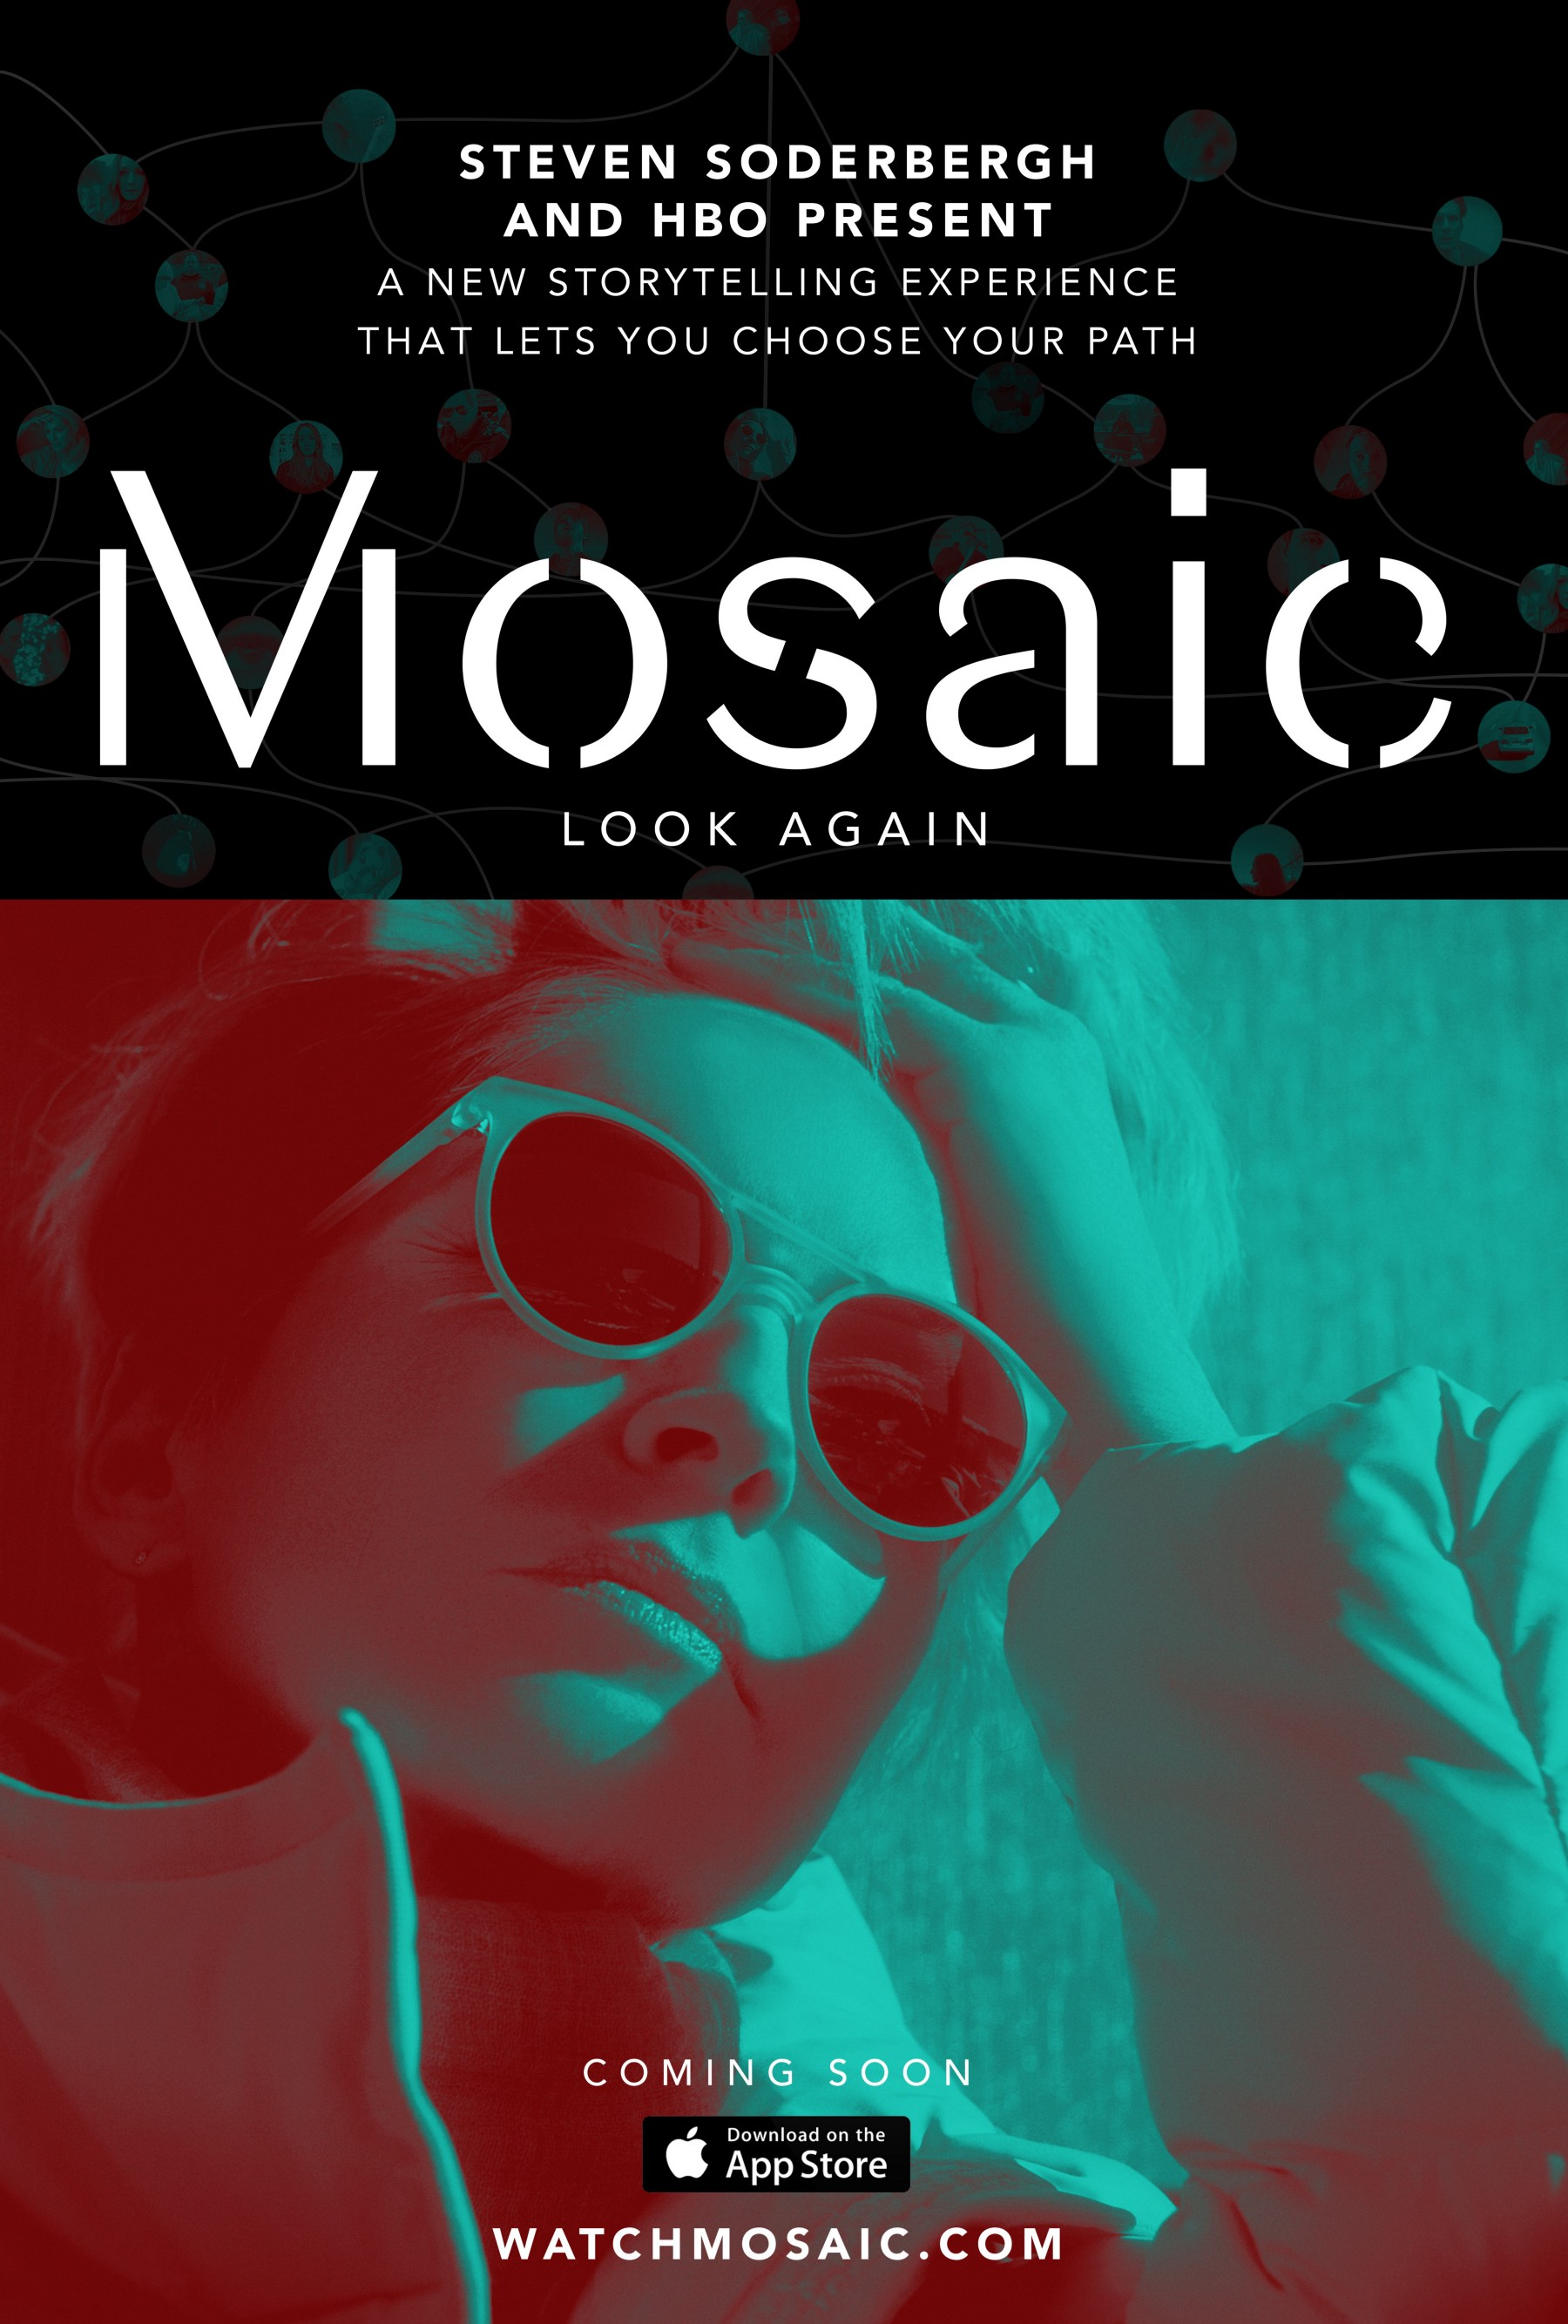 How to Use the HBO Mosaic from Steven Soderbergh App on iPhone or iPad